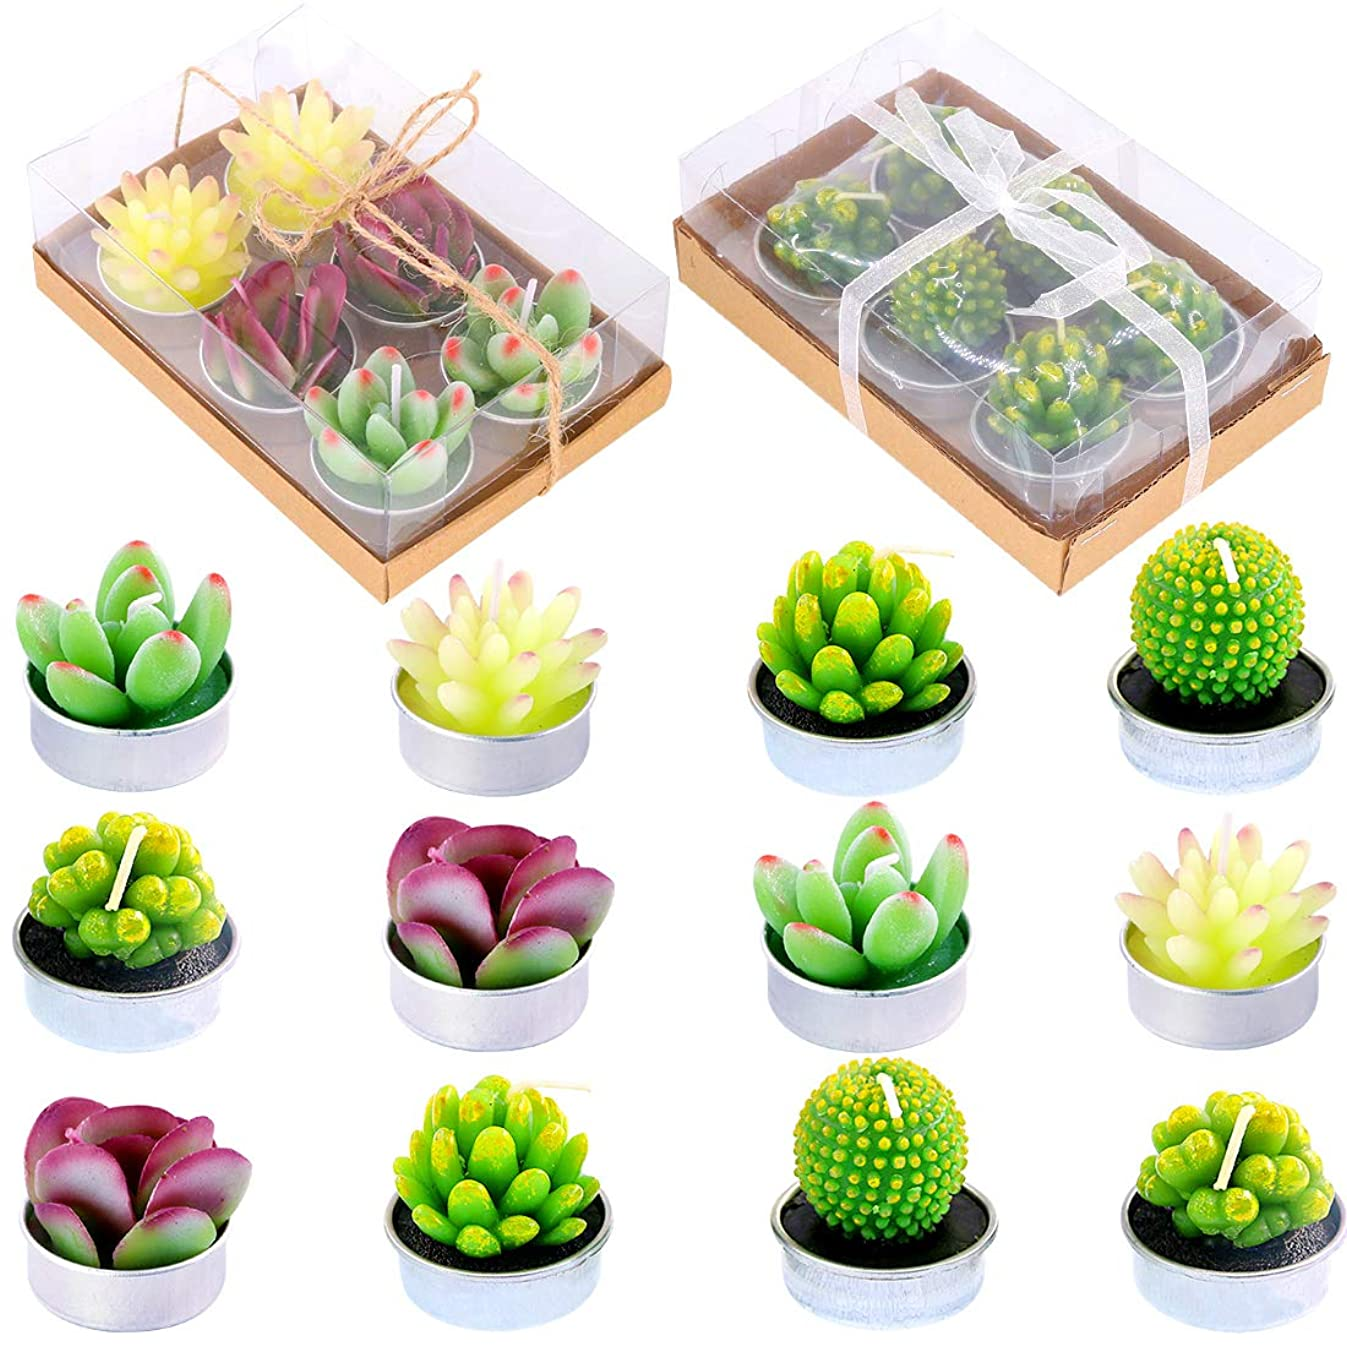 Glarks Cute Tea Lights Tealight Candles, Succulent Cactus for Birthday Party Valentine's Day Wedding Spa Home Decor and DIY Gift, 12Pcs a Pack